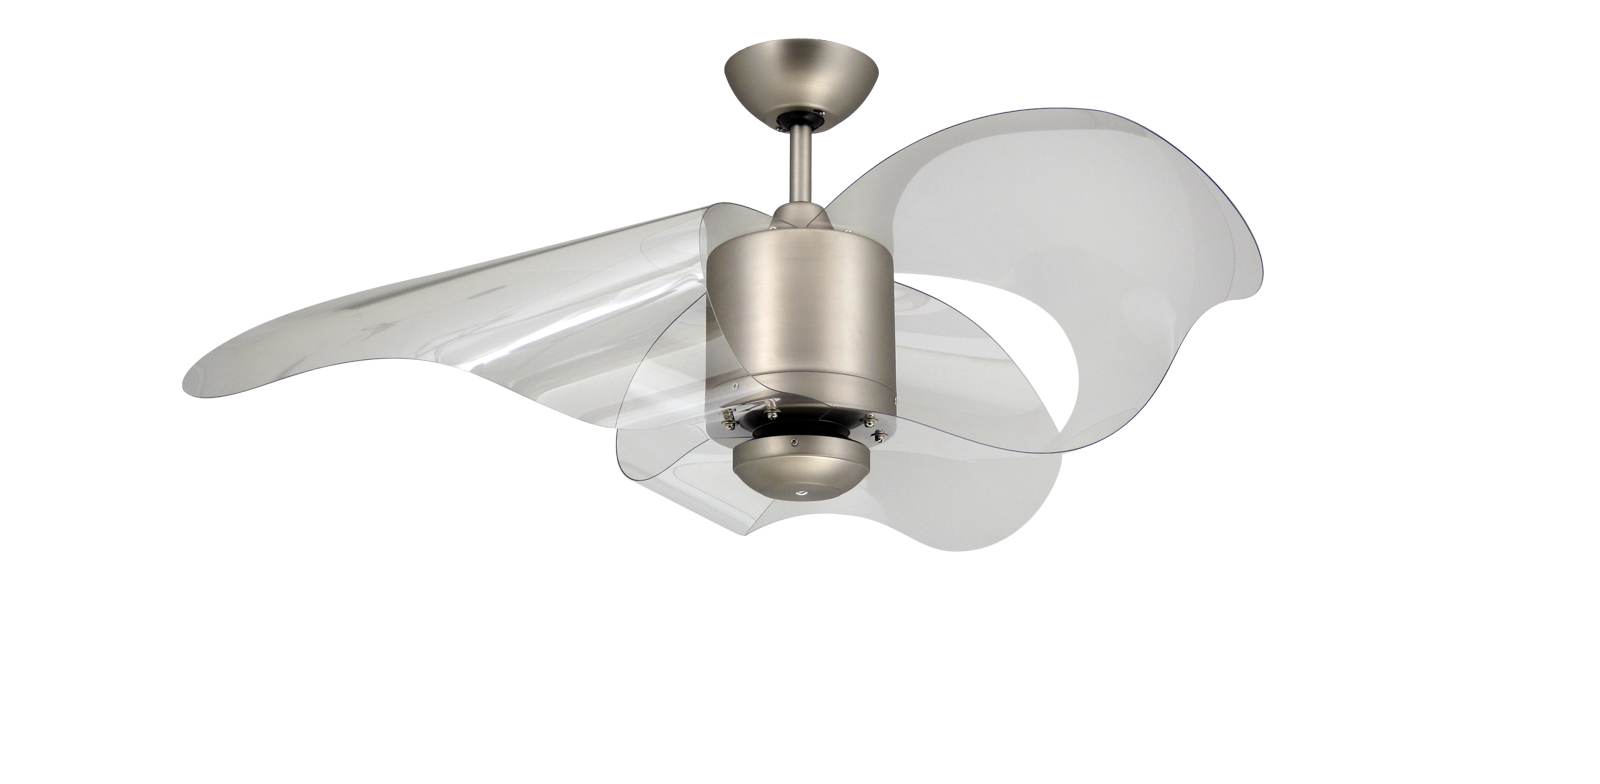 Evoke The Magnificence With Blyss Ceiling Fans Warisan Lighting